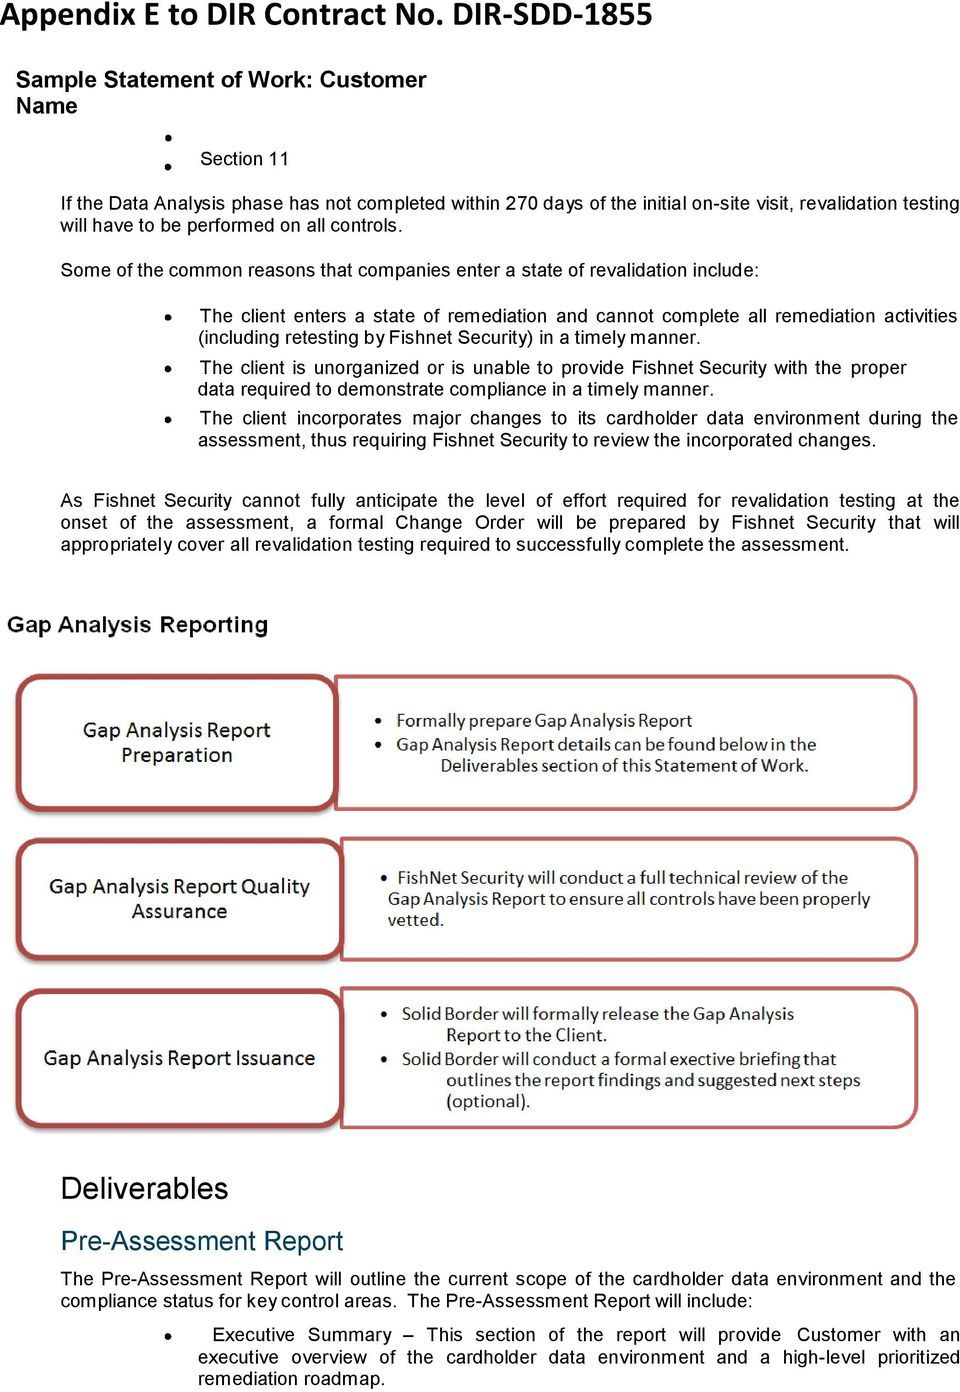 Sample Statement Of Work Pdf Free Download Intended For Pci Dss